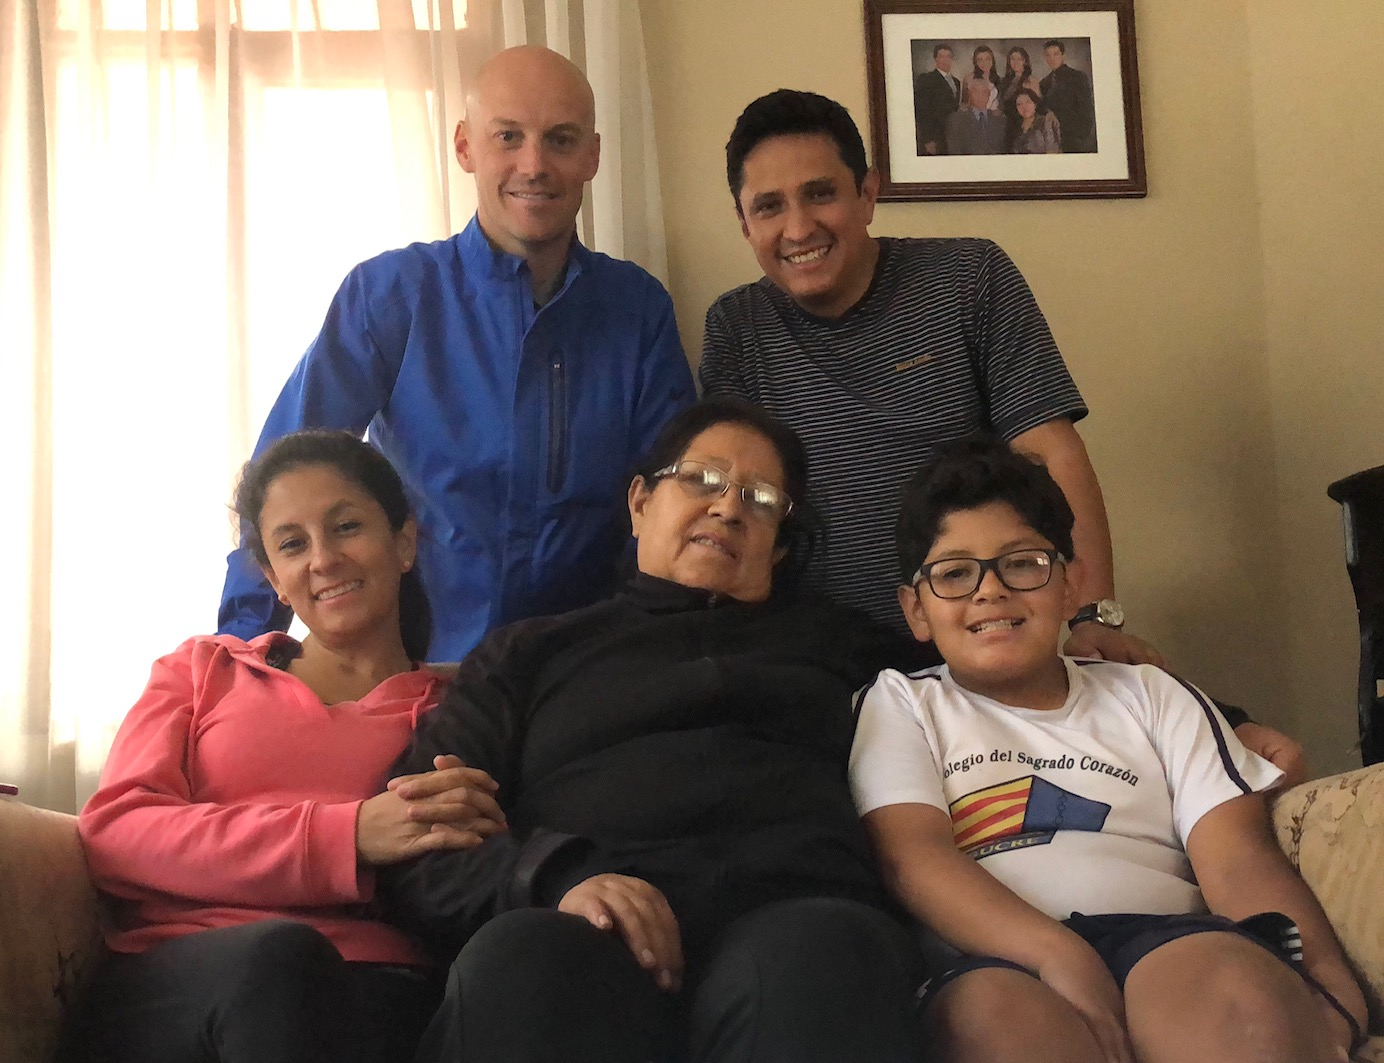 Scott Mortensen (top left) with members of the Perez Quiroz family in the same home where he taught them 20 years ago in Sucre, Bolivia. Mortensen visited the family in October.